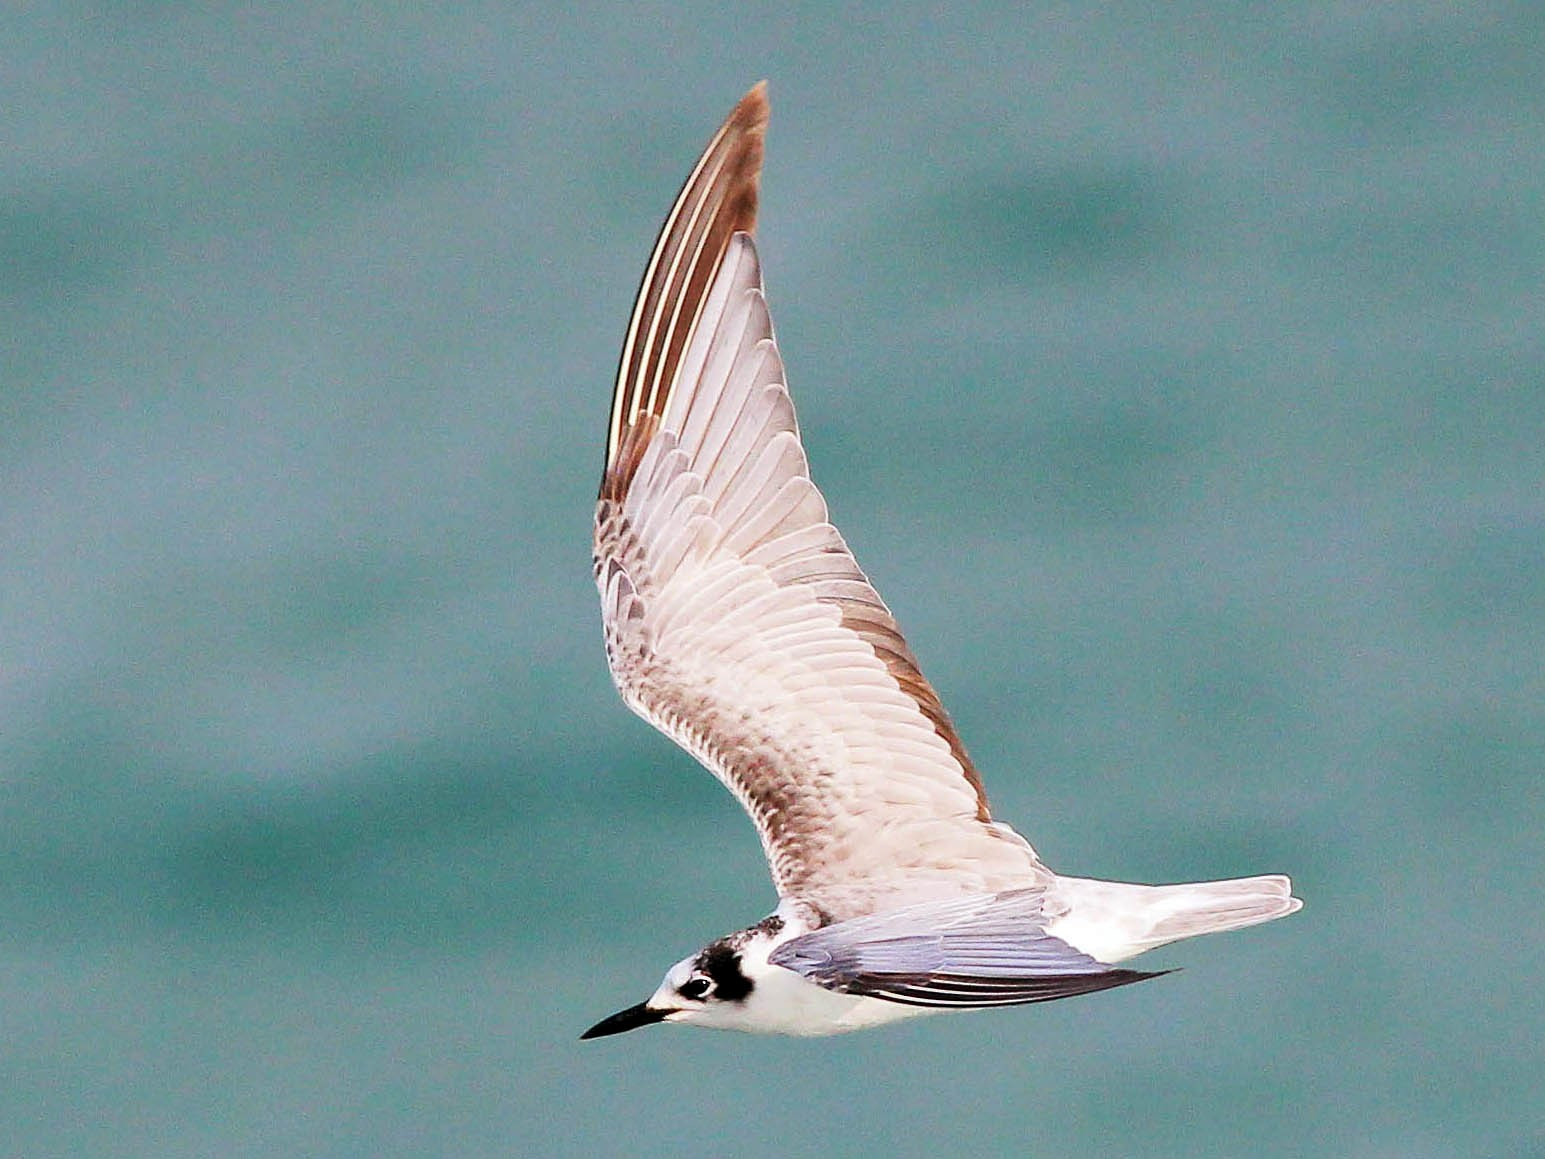 White-winged Tern - Neoh Hor Kee